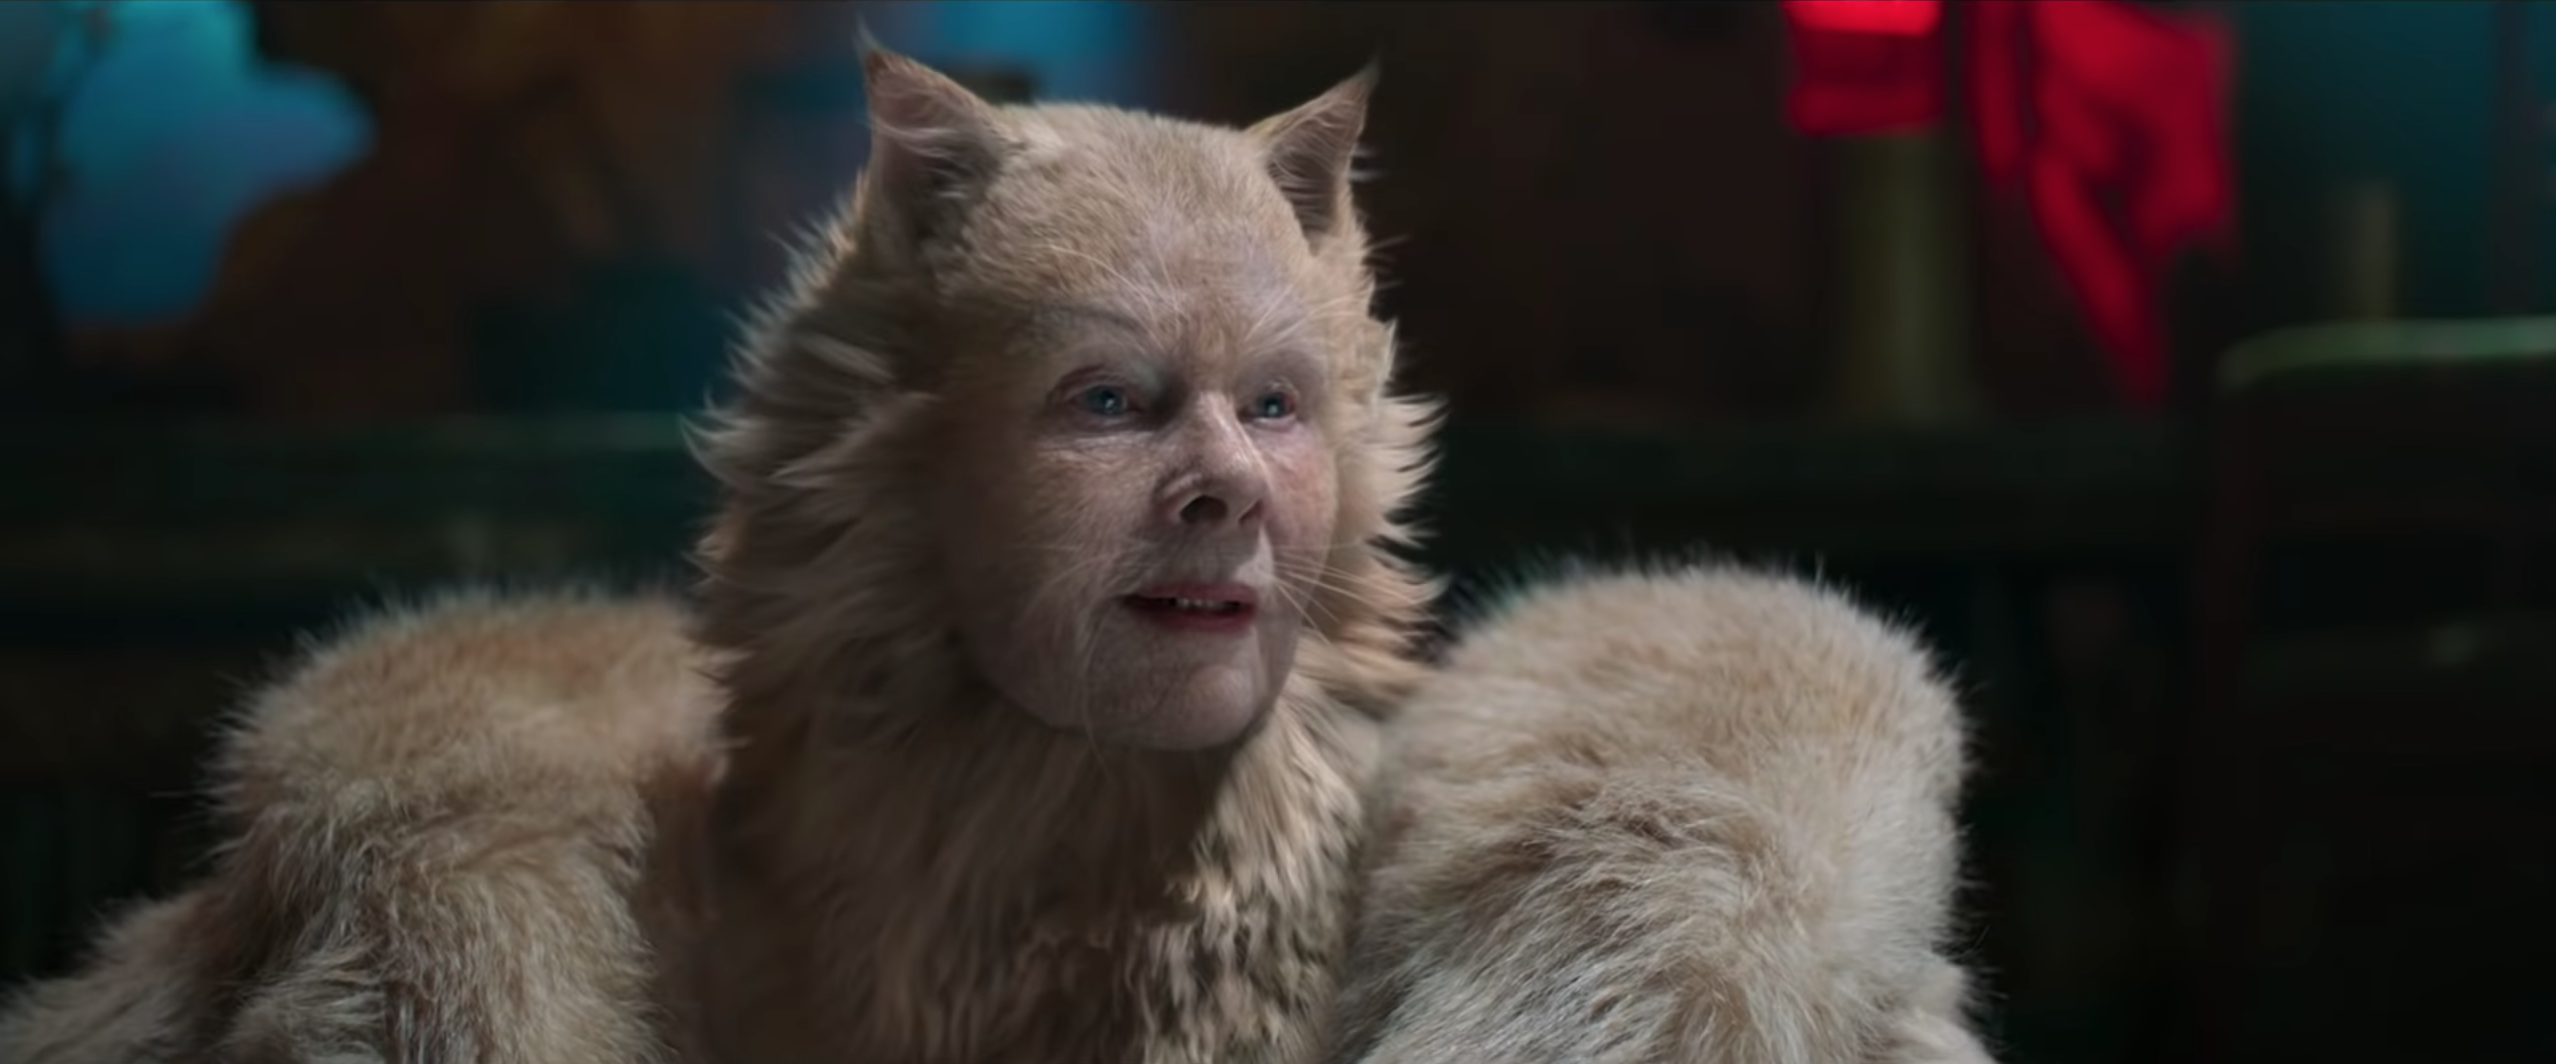 The Cats in \u0027Cats\u0027 Have Changed After the Creepy Trailer